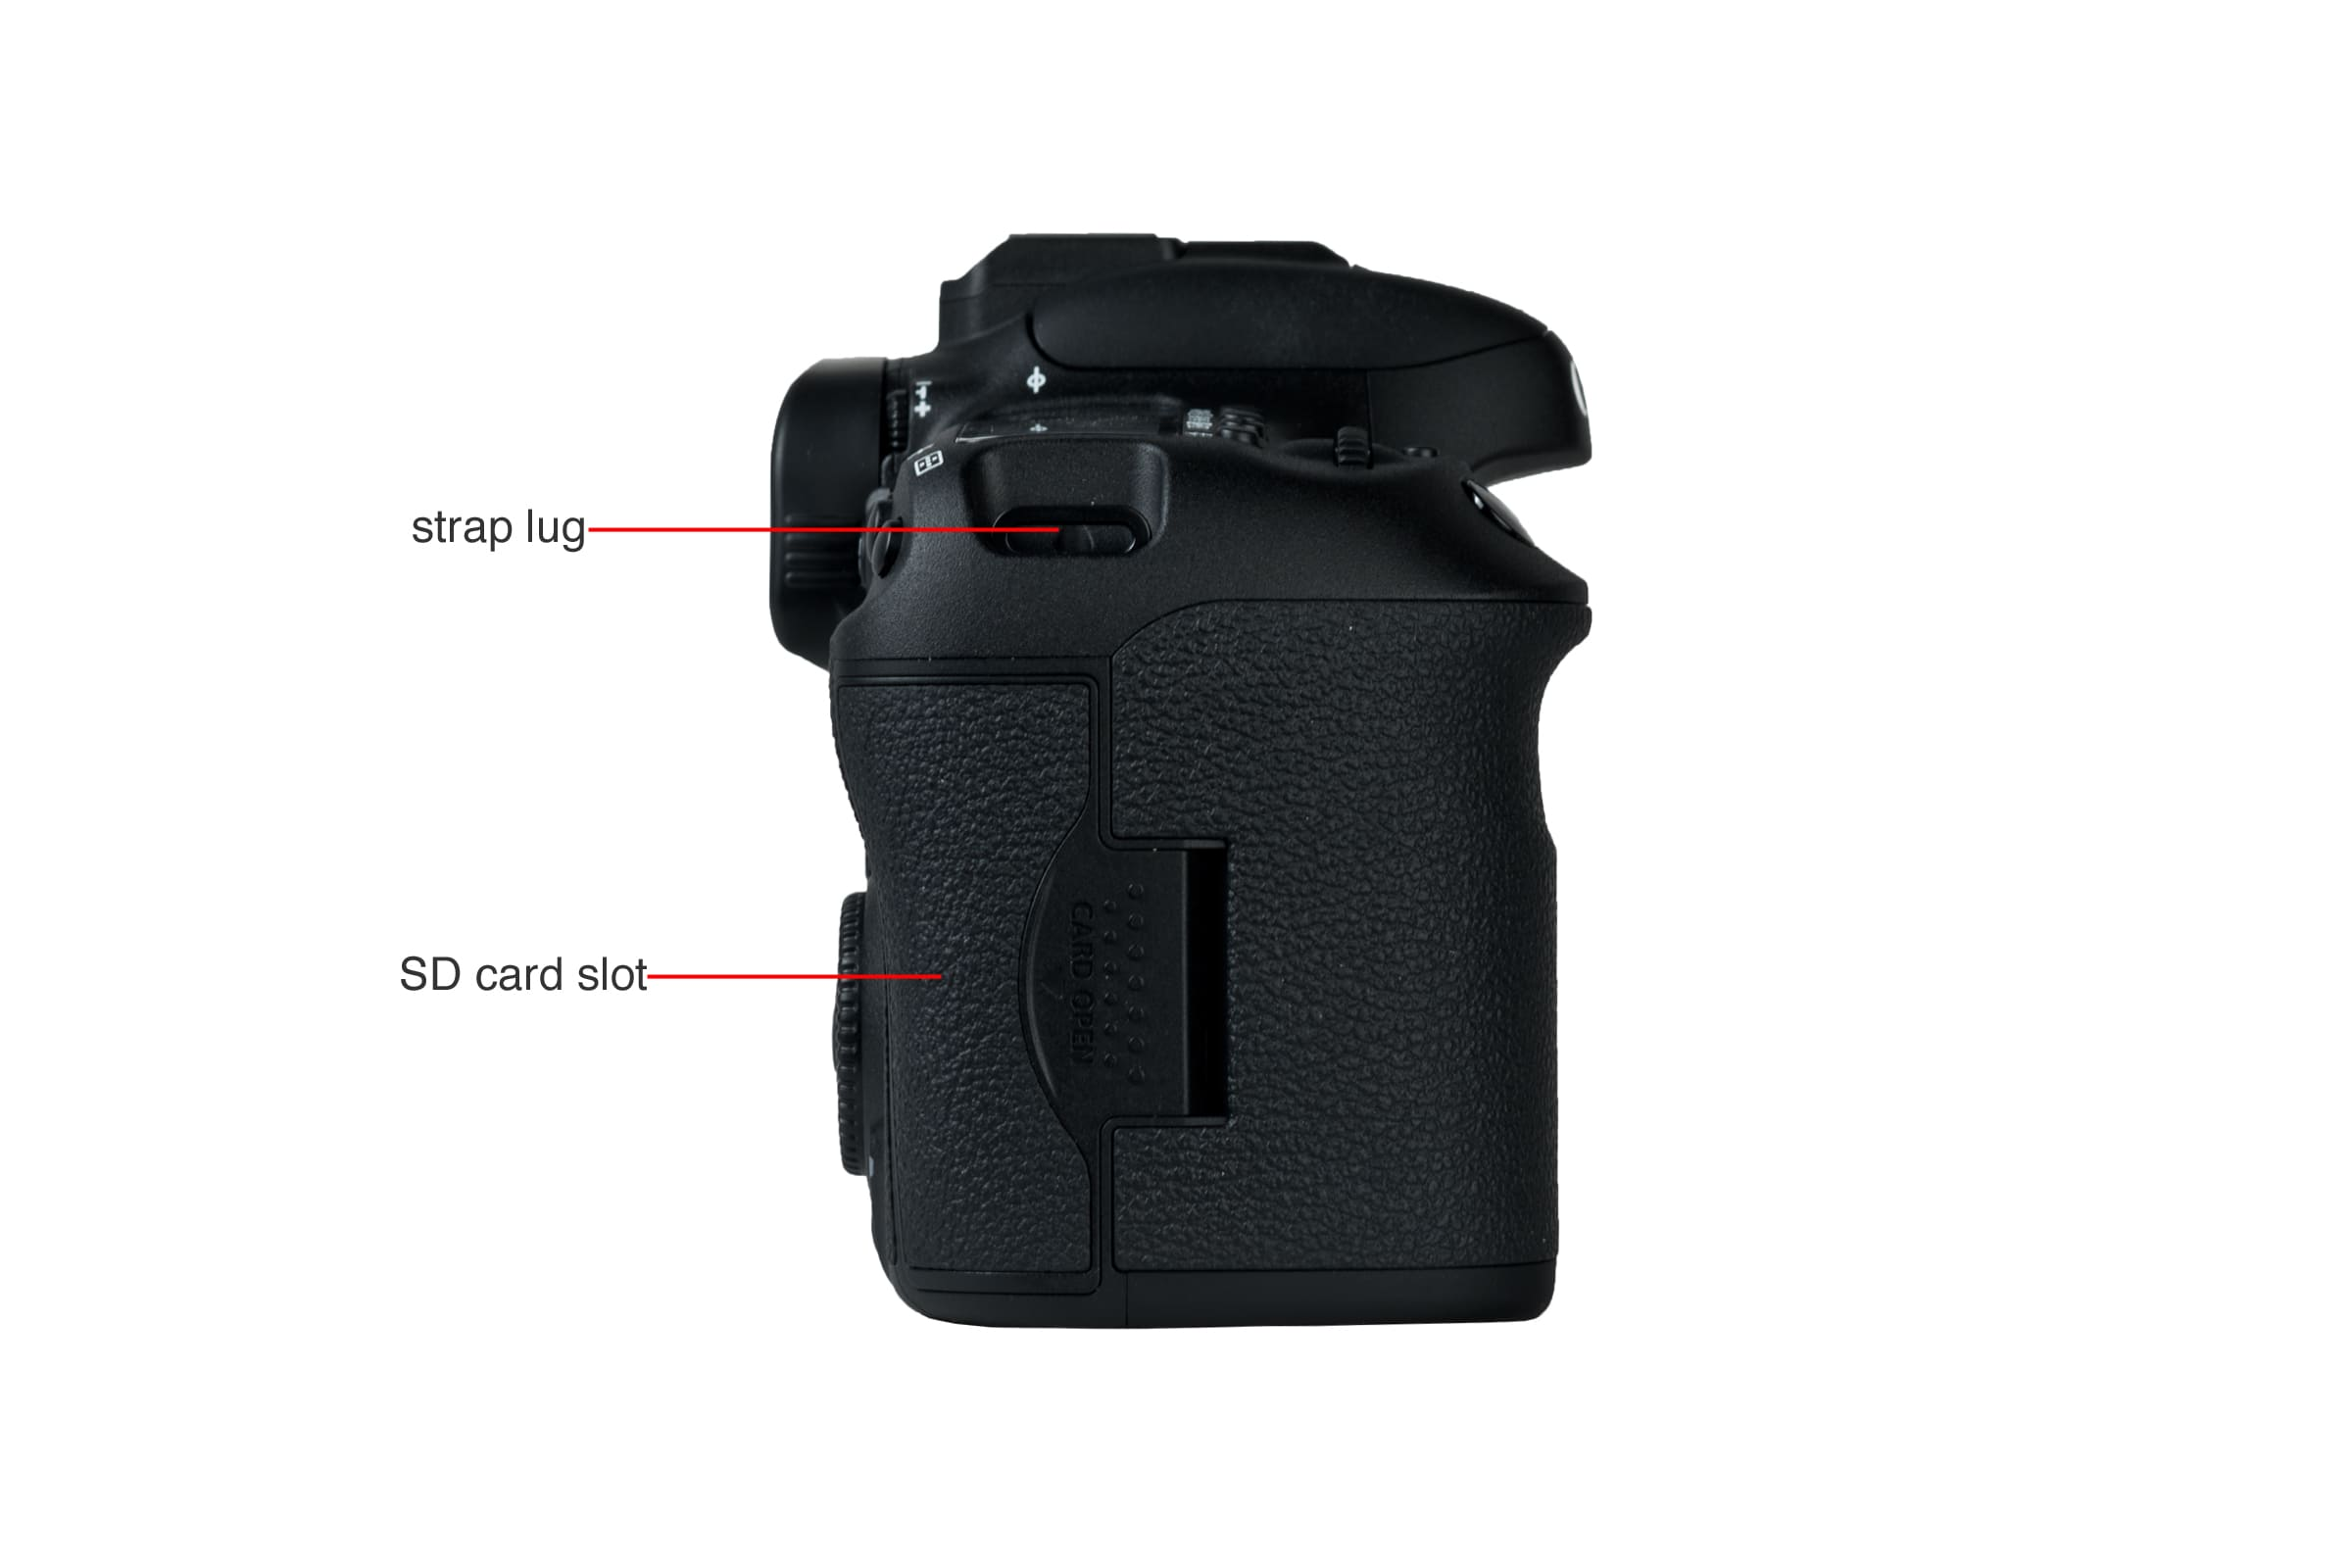 A picture illustrating the buttons and controls of the Canon 7D MkII's right.